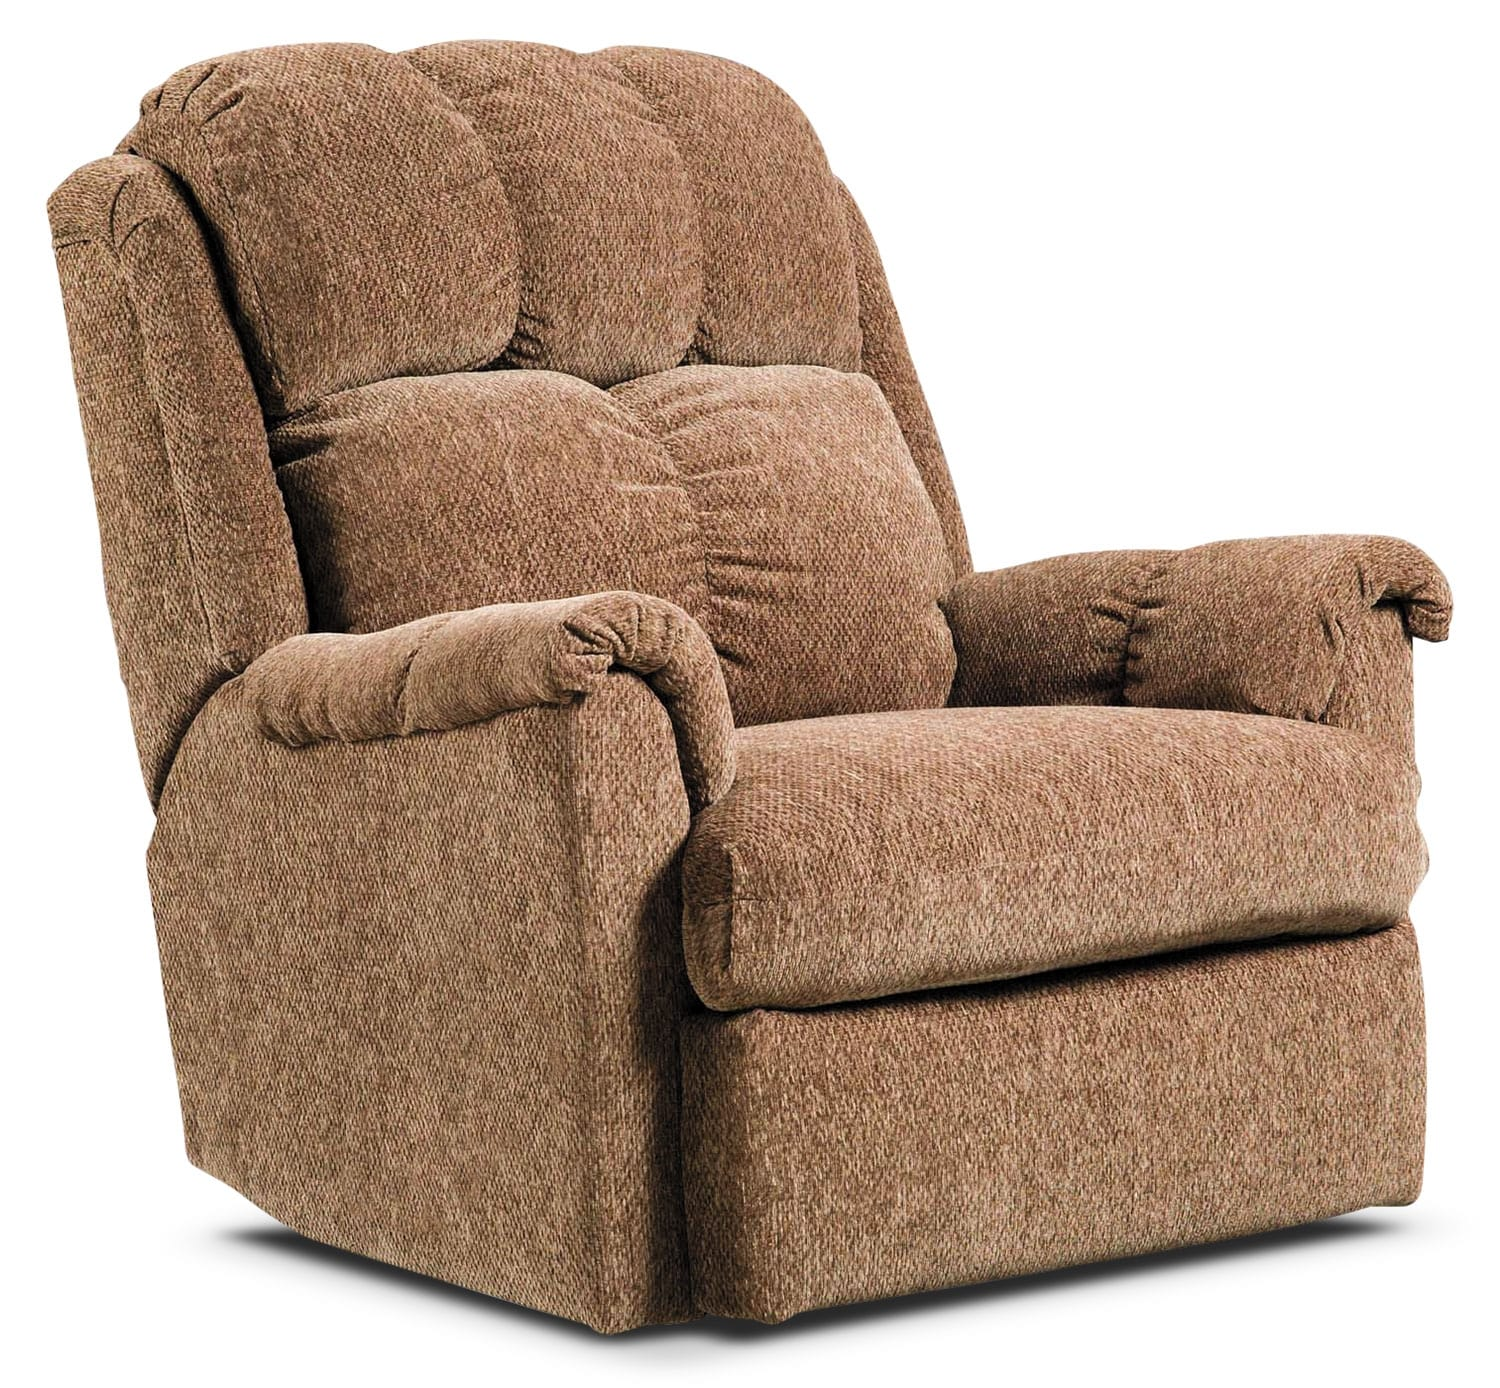 Power Reclining Chairs Brown Chenille Power Reclining Chair The Brick